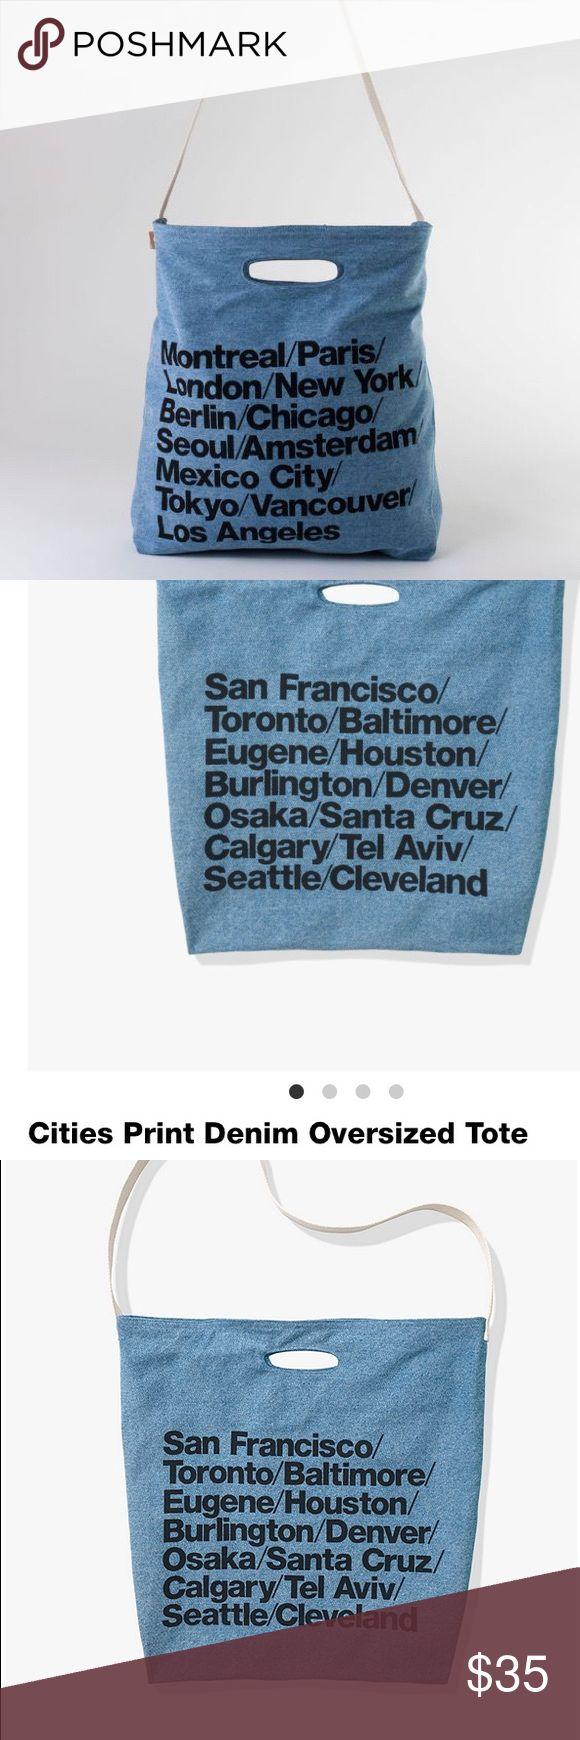 🆕 American Apparel Cities Denim Tote Bag new Brand new with tags! Get this iconic bag while you still can. American Apparel Bags Totes